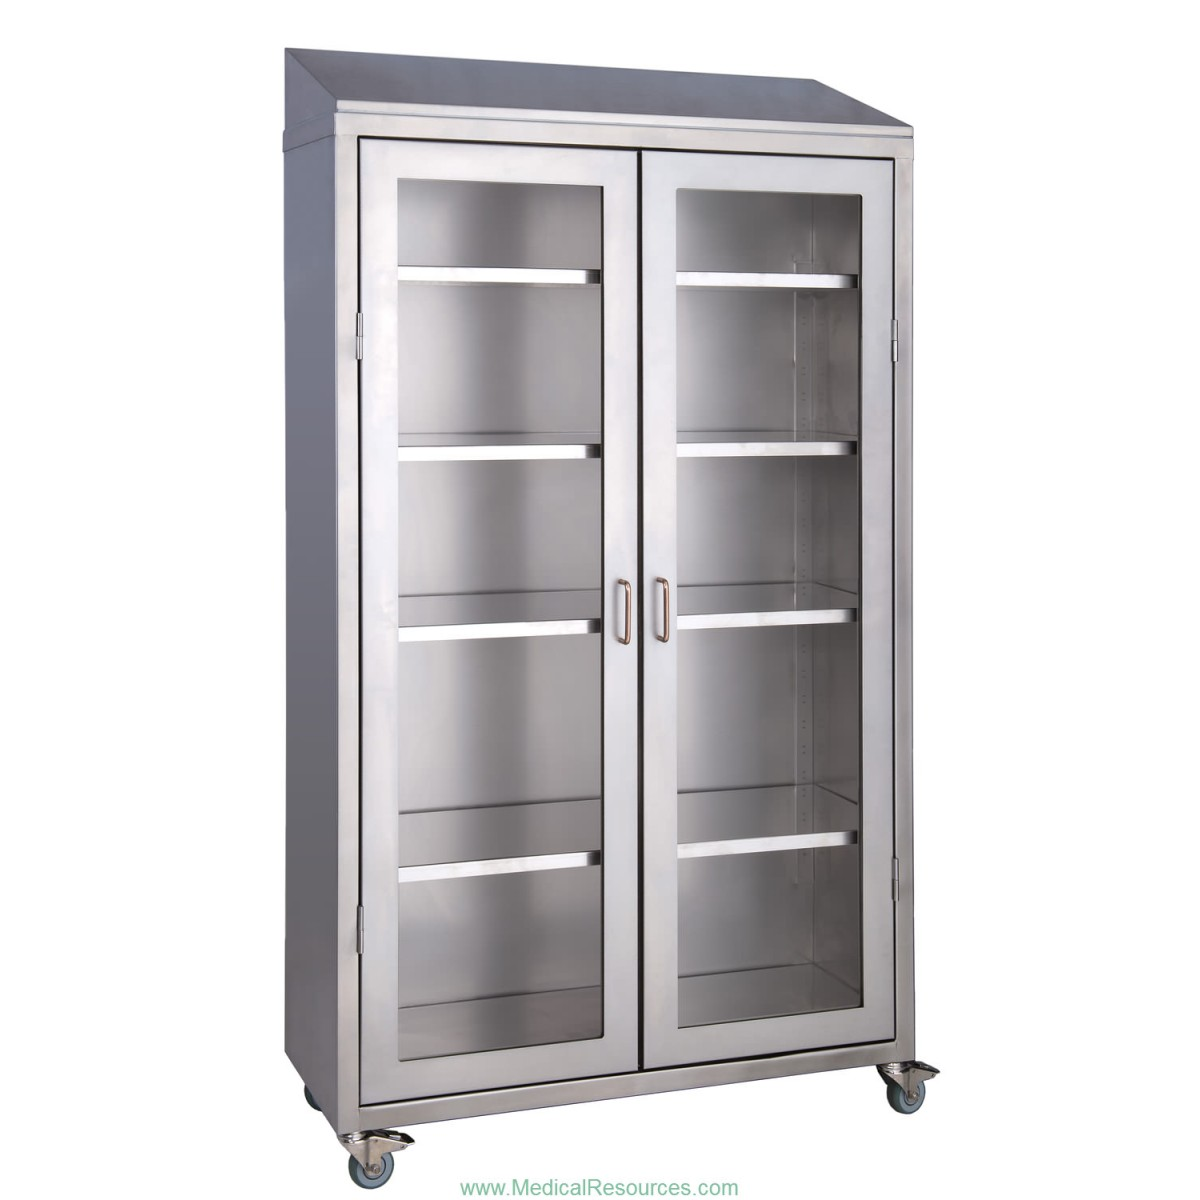 Stainless Kitchen Cabinet: Medwurx_mobile_stainless_steel_instrument_supply_cabinets